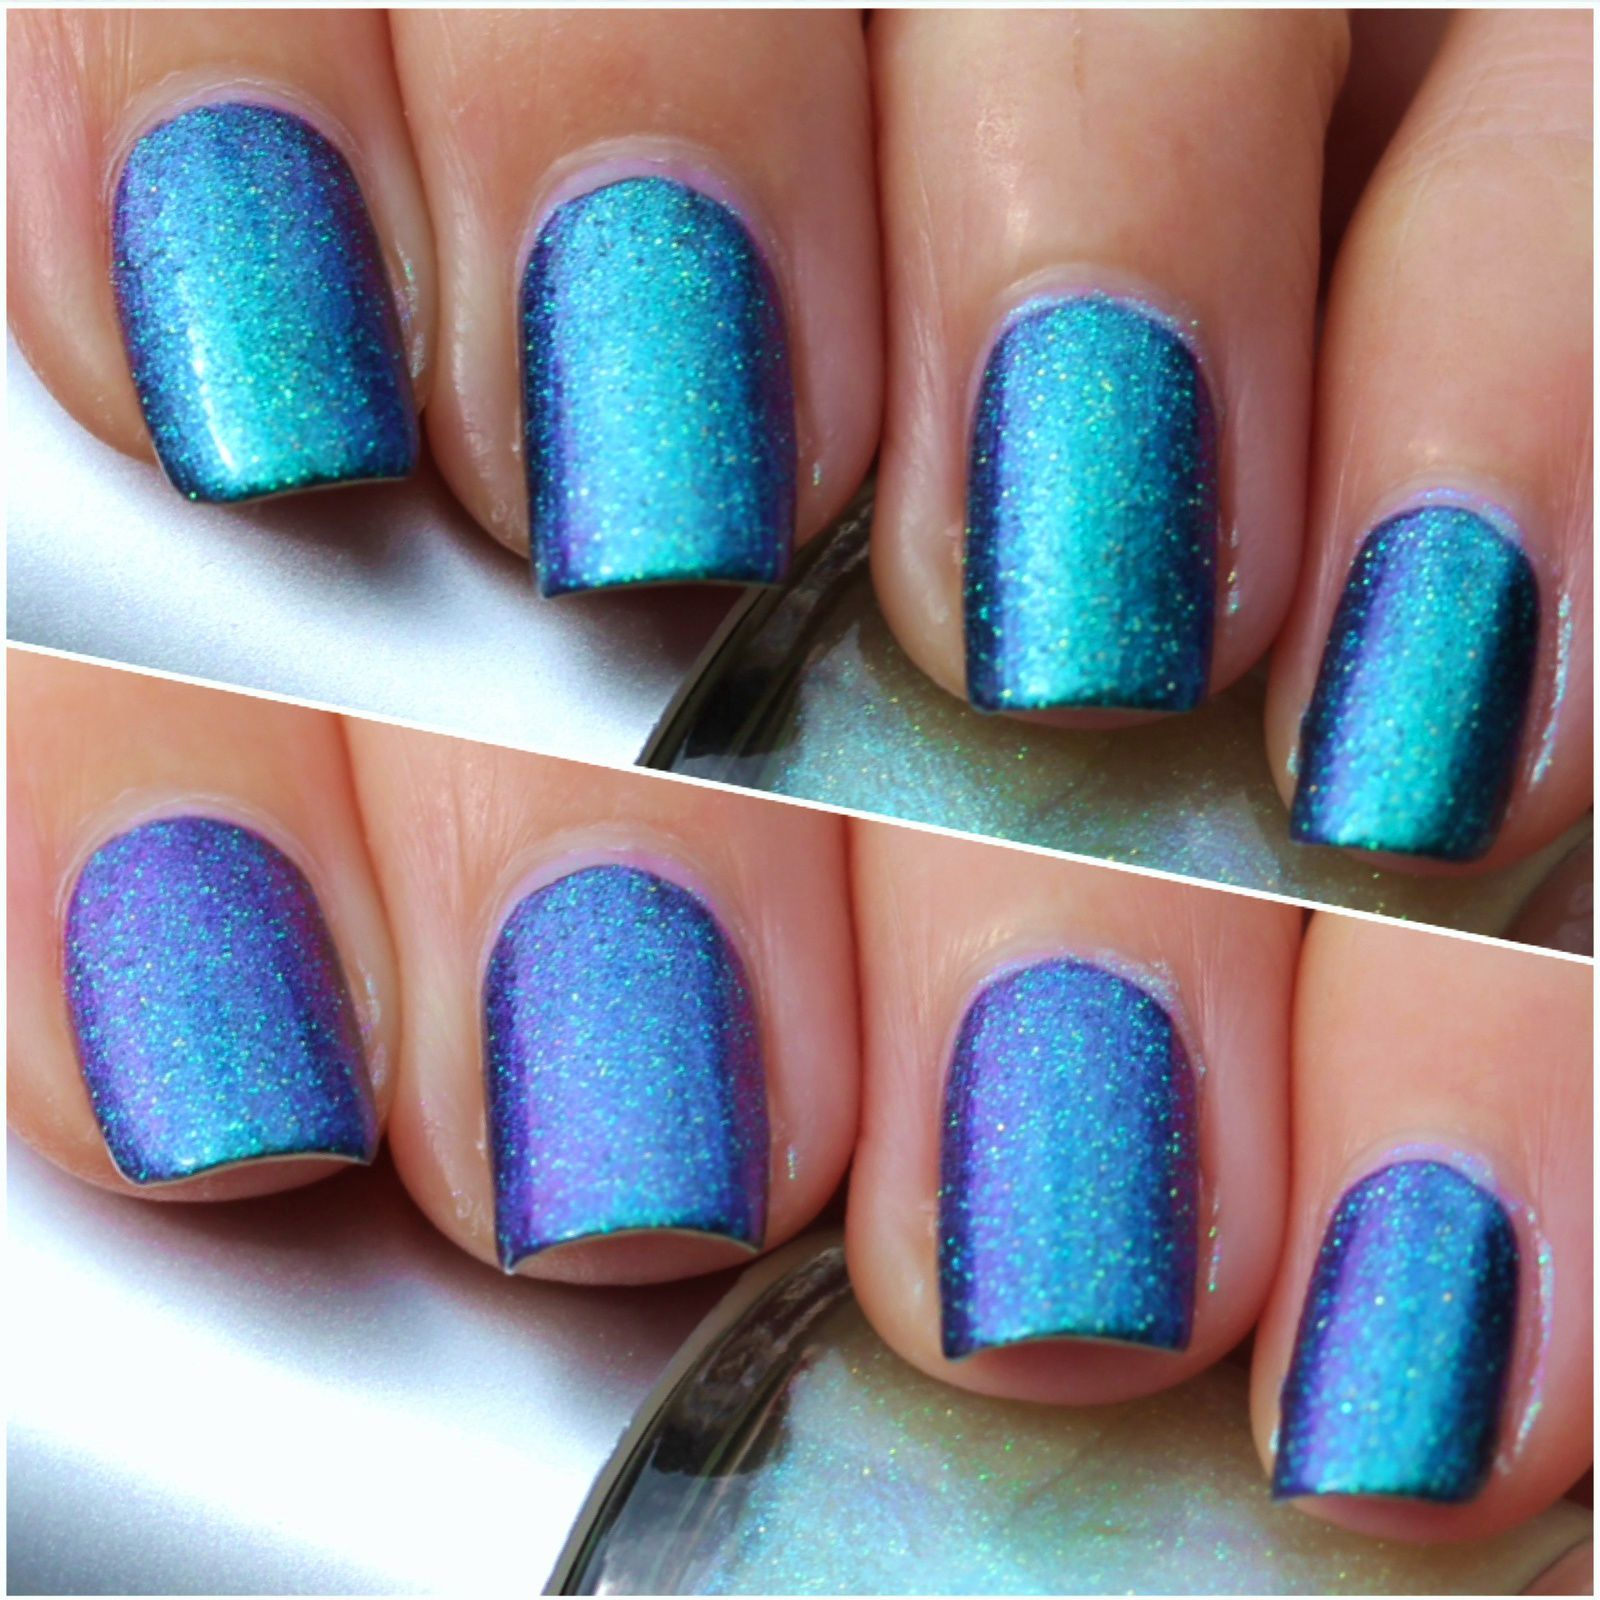 Pink Dipsy Bulle Nebula is a teal blue and purple multichrome with multichrome micro glitter that shift from gold to green.